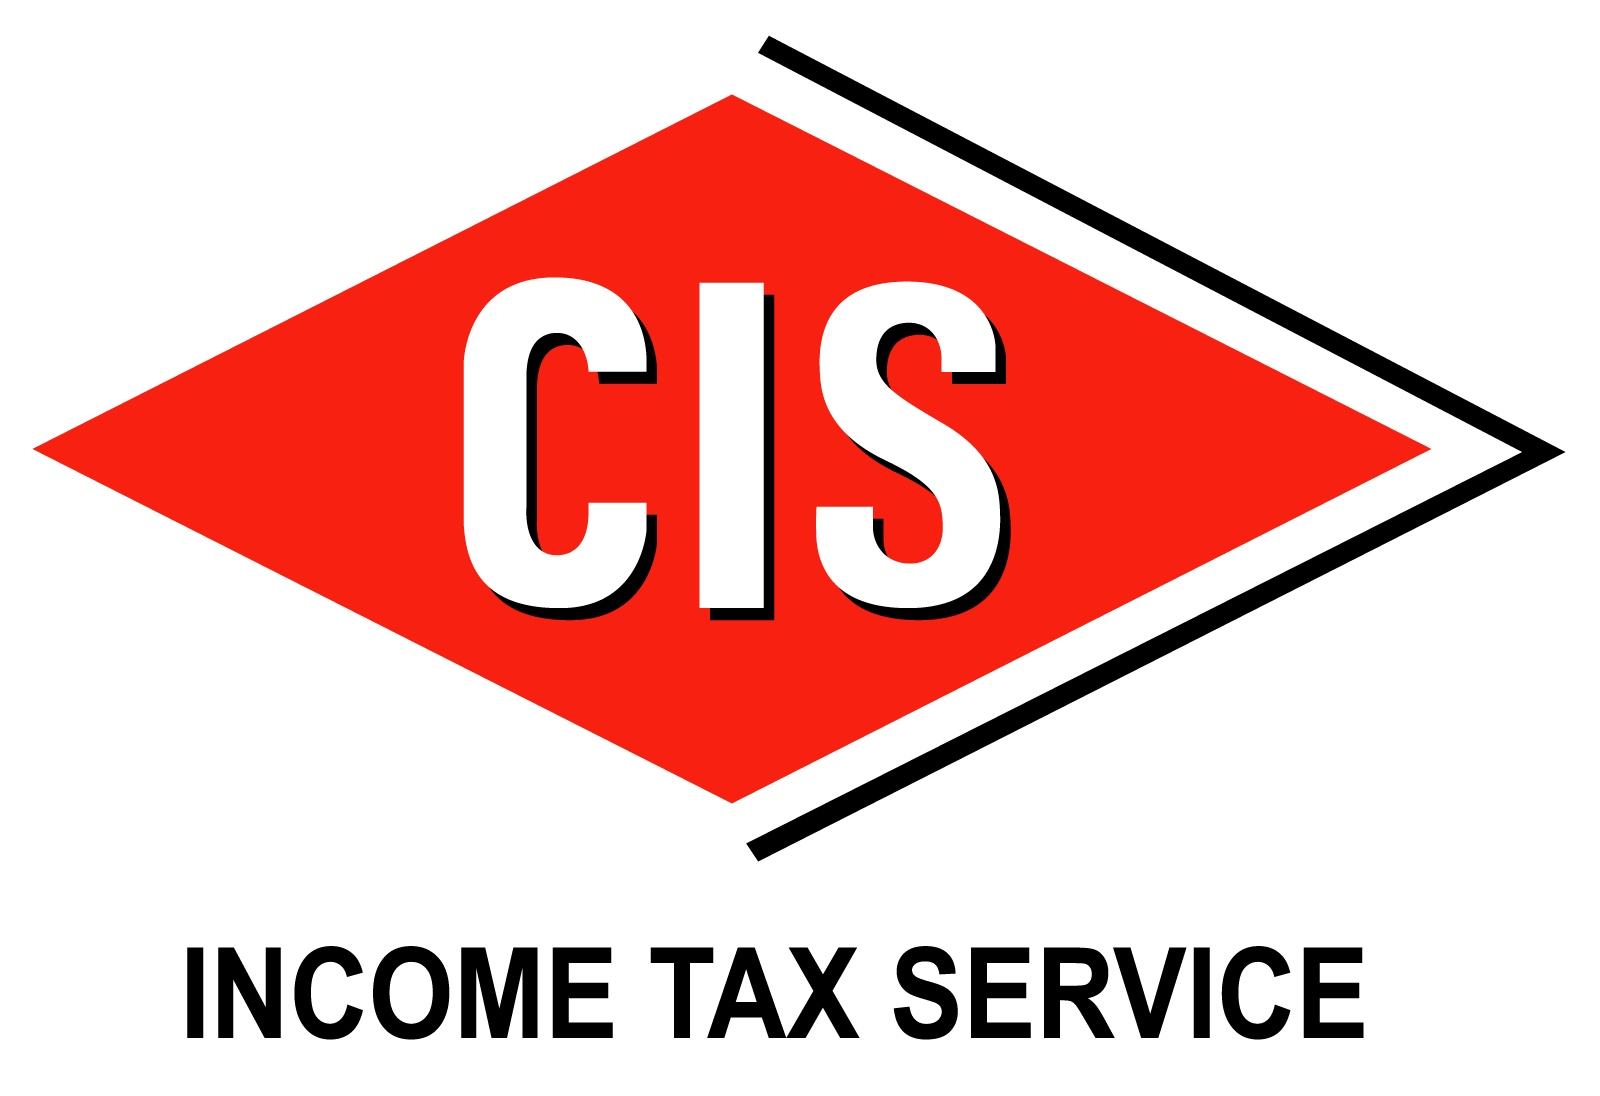 CIS Income Tax Service logo